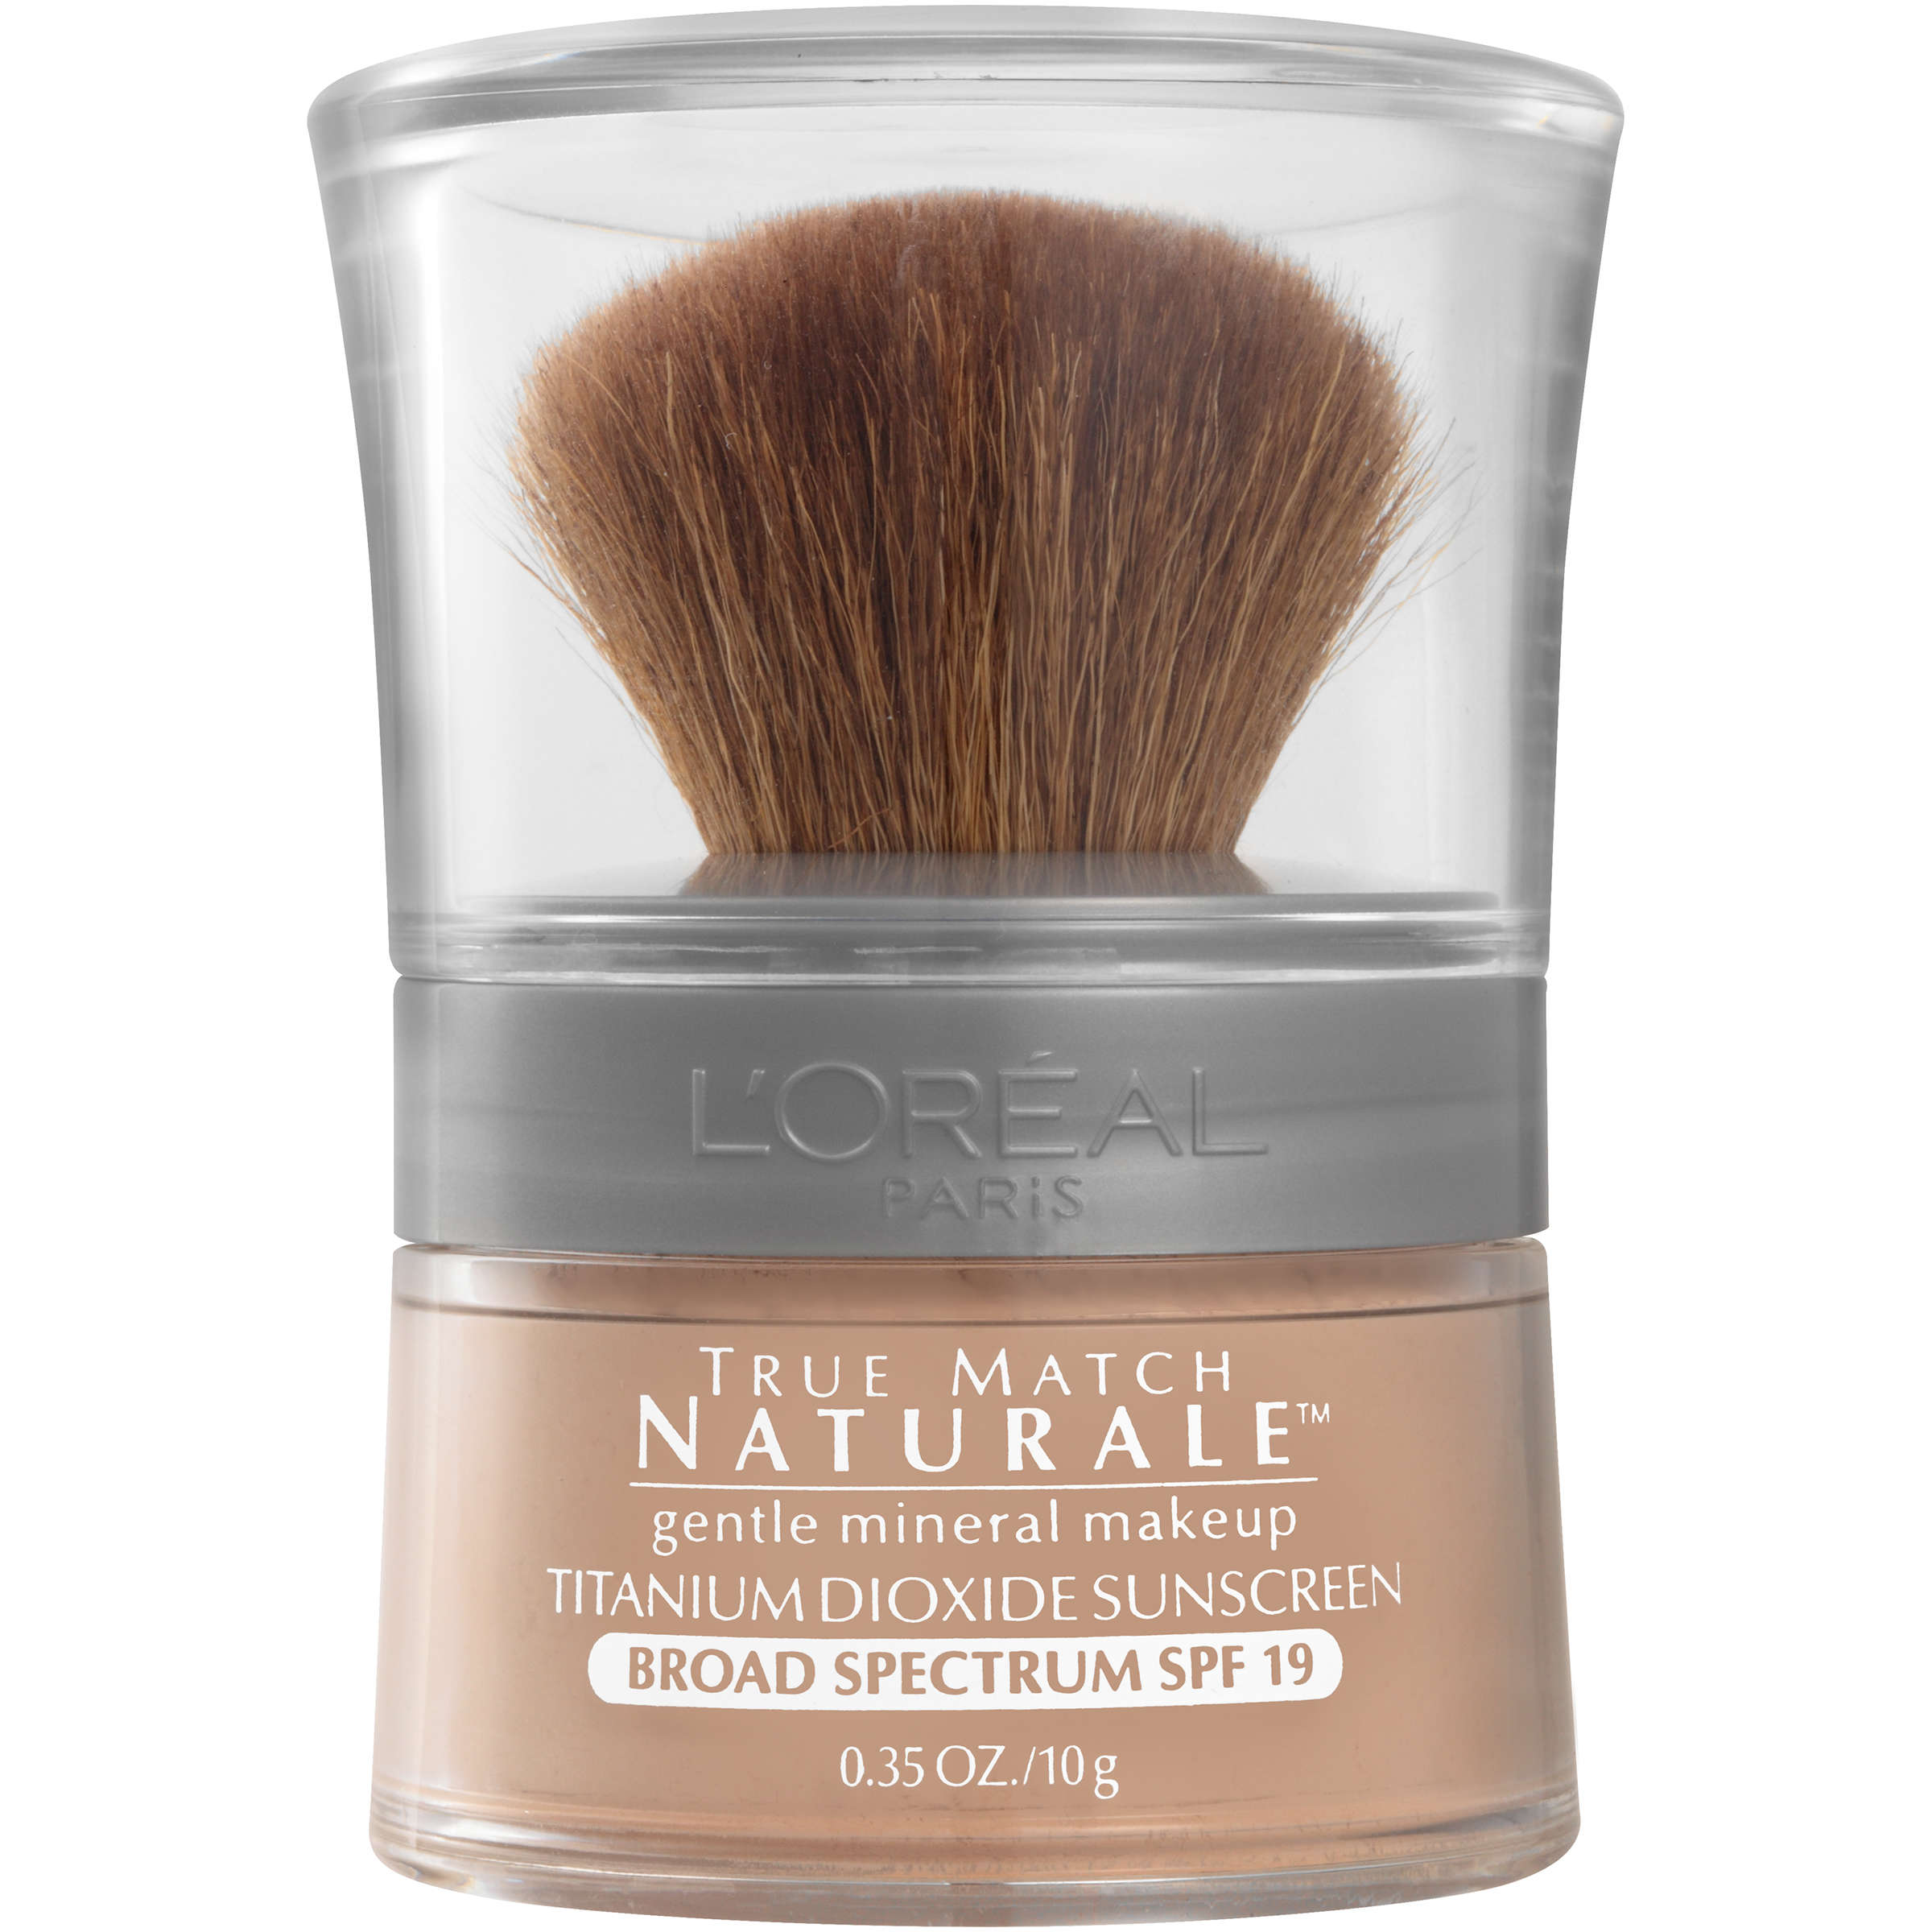 L'Oreal Paris True Match Mineral Foundation, Light Ivory, 0.35 oz